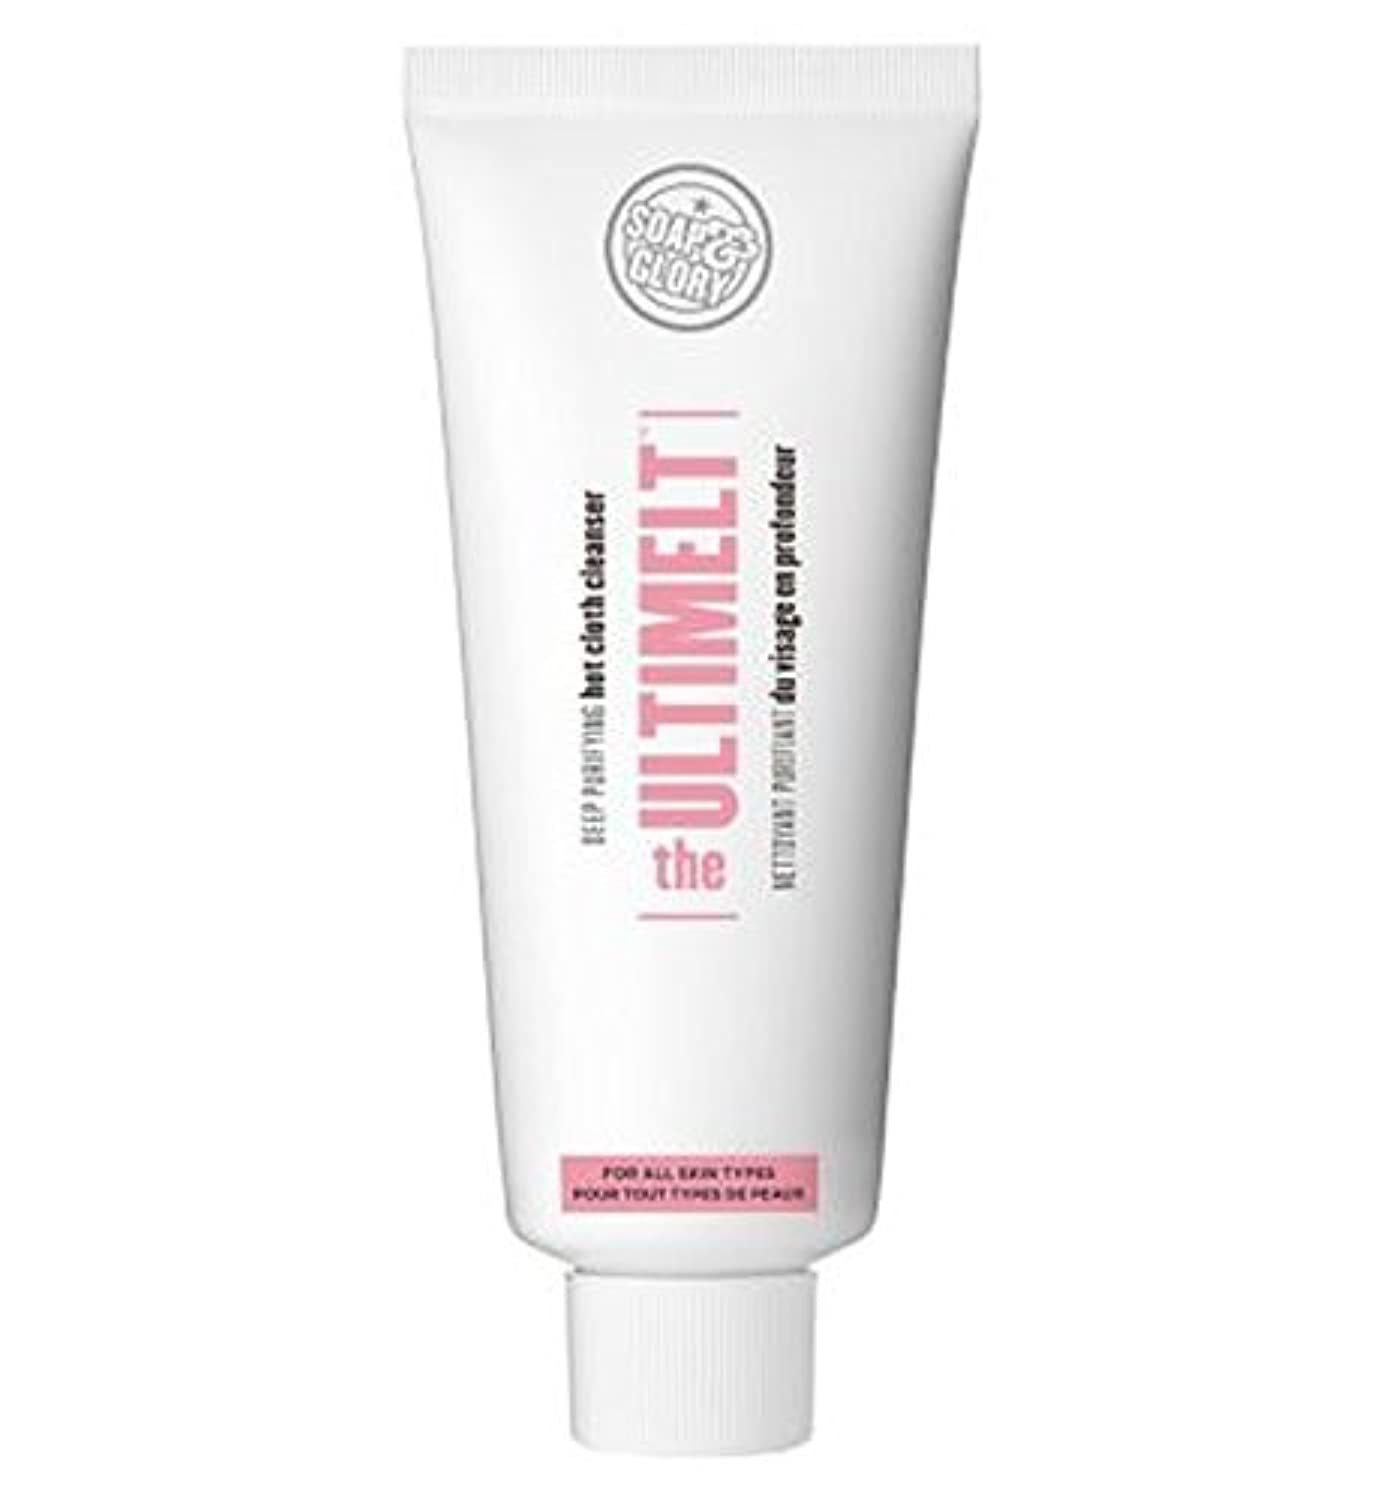 Soap & Glory? The Ultimelt? Deep Purifying Hot Cloth Cleanser - Ultimelt?深い浄化ホット布クレンザー?石鹸&栄光 (Soap & Glory) [並行輸入品]